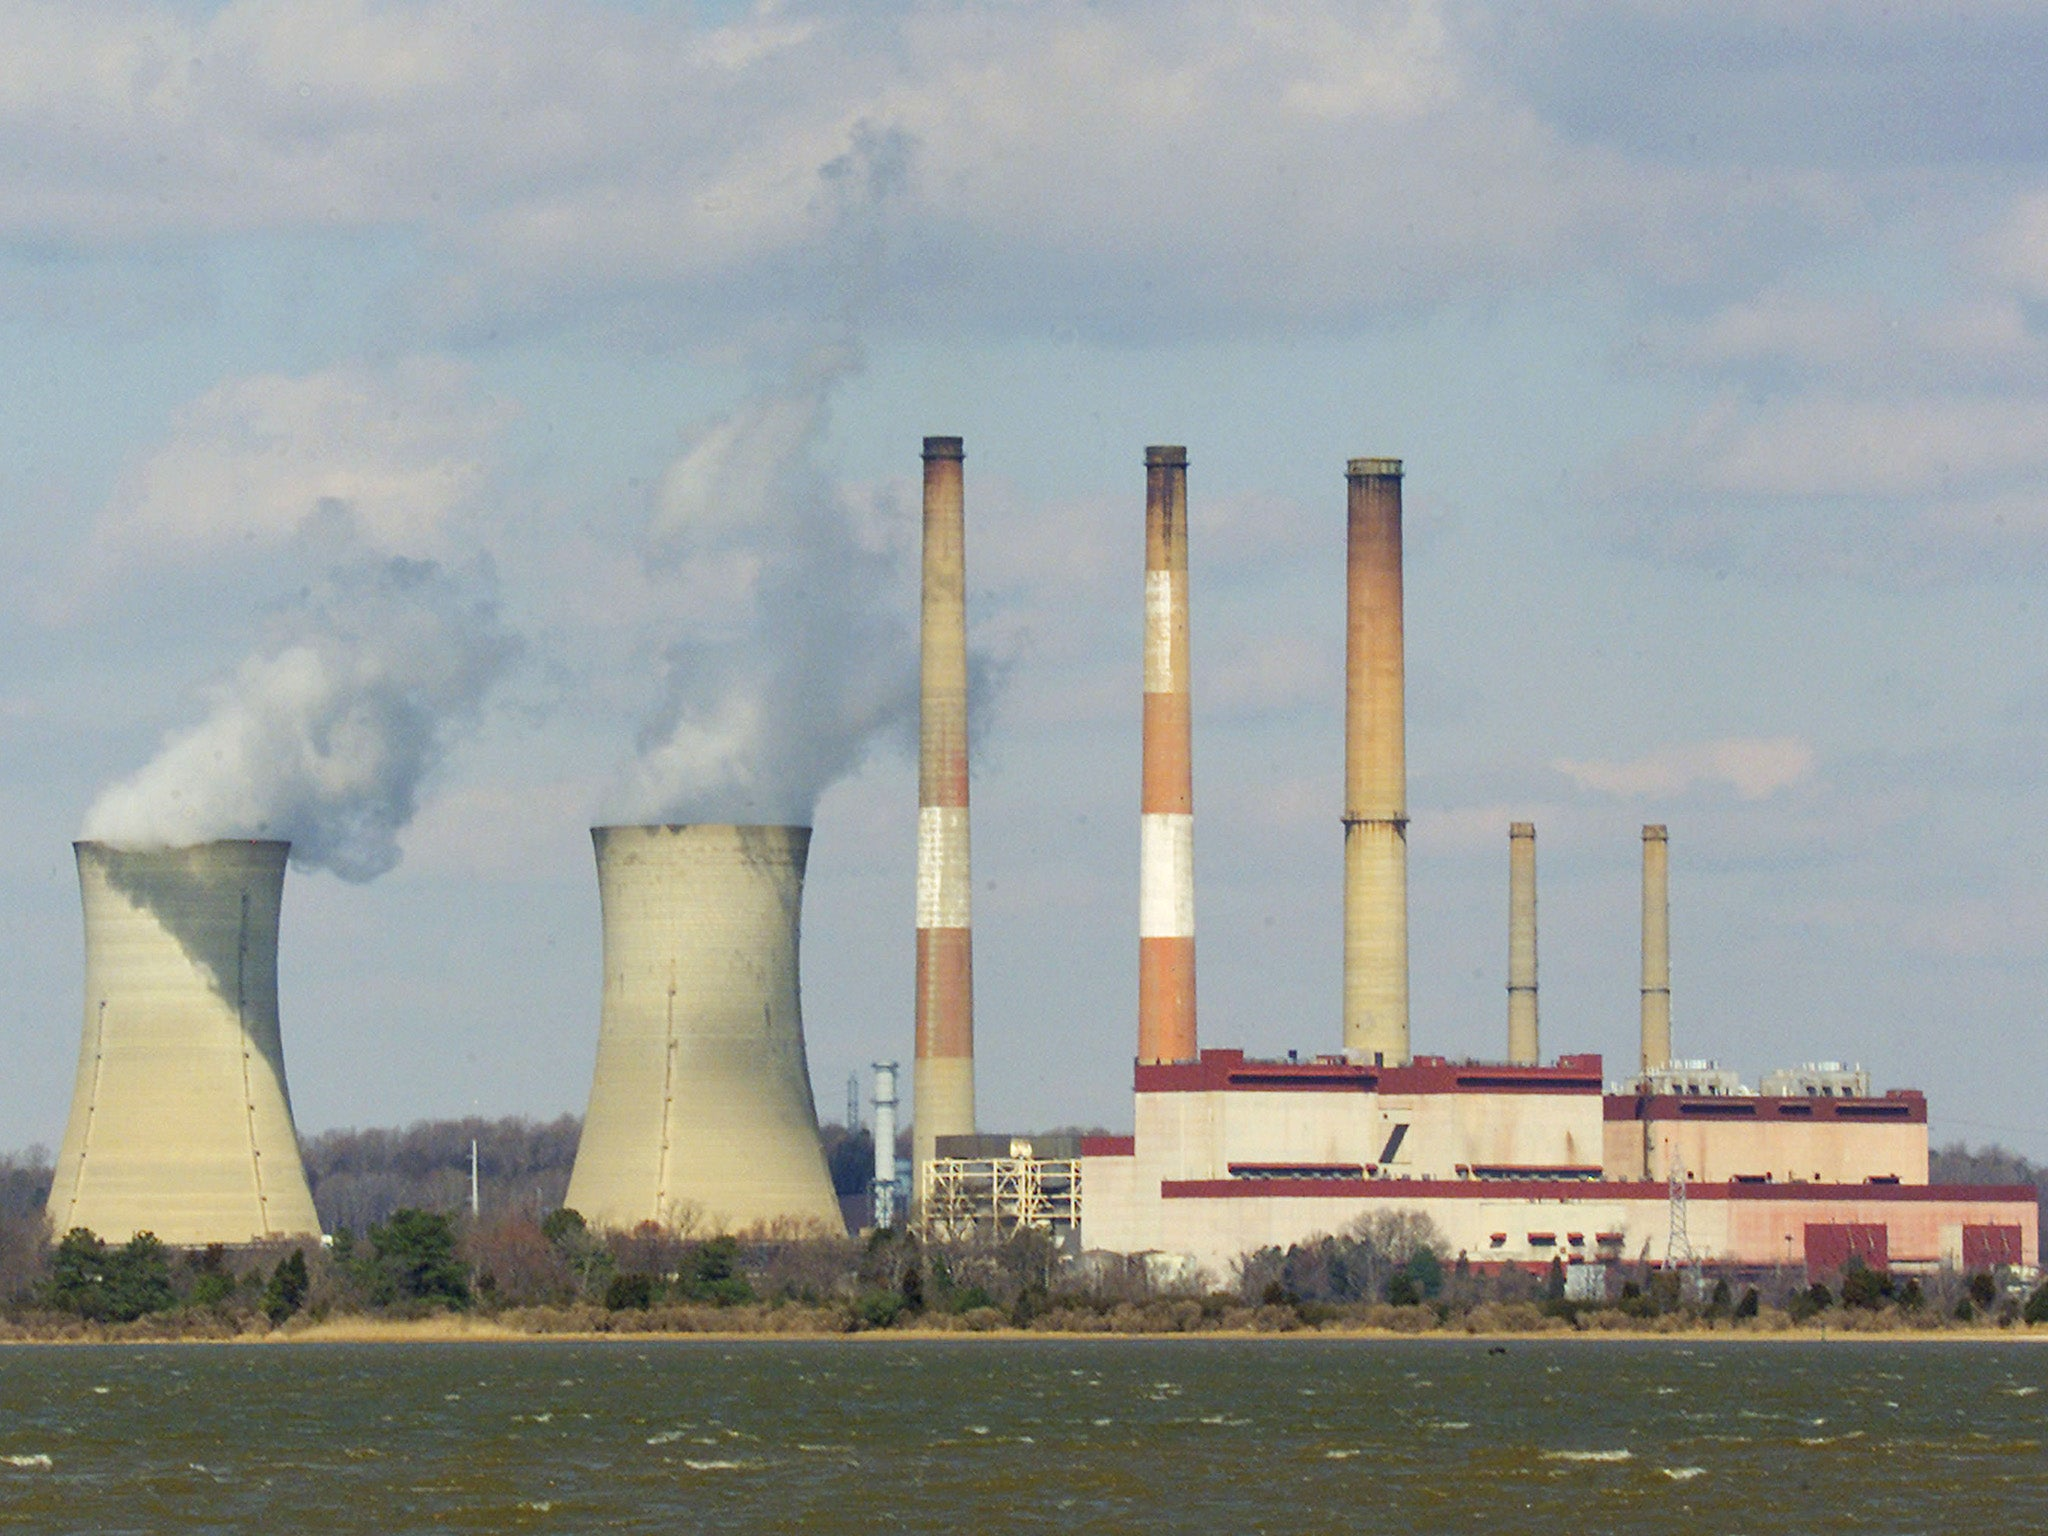 Canada set to phase out coal fired power by 2030